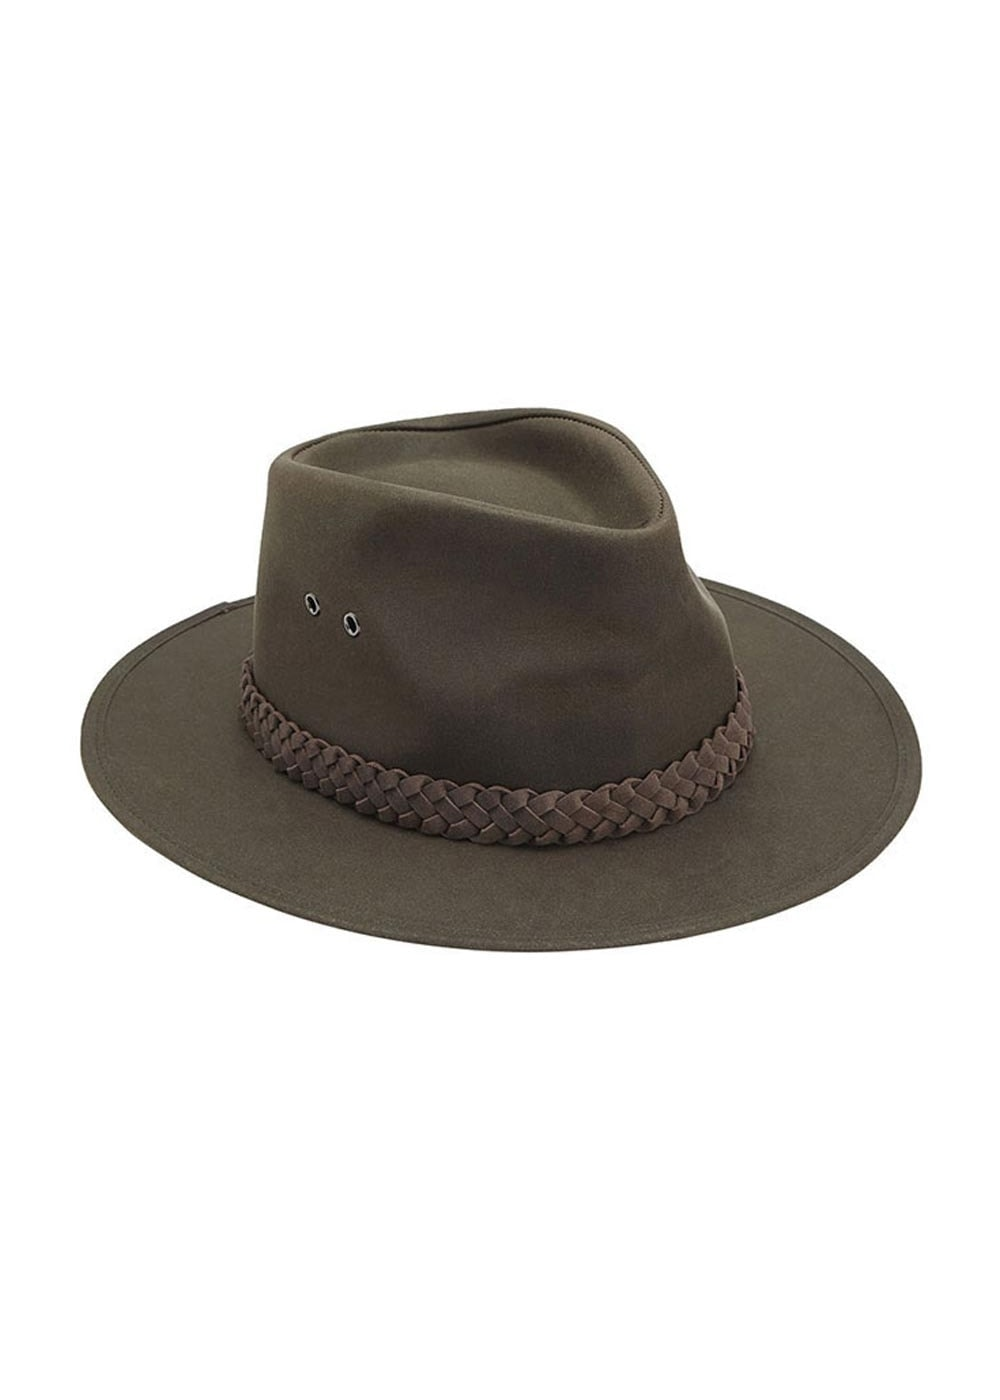 Barbour Wax Bushman Hat - Mens from A Hume UK 7ff8f70db3c